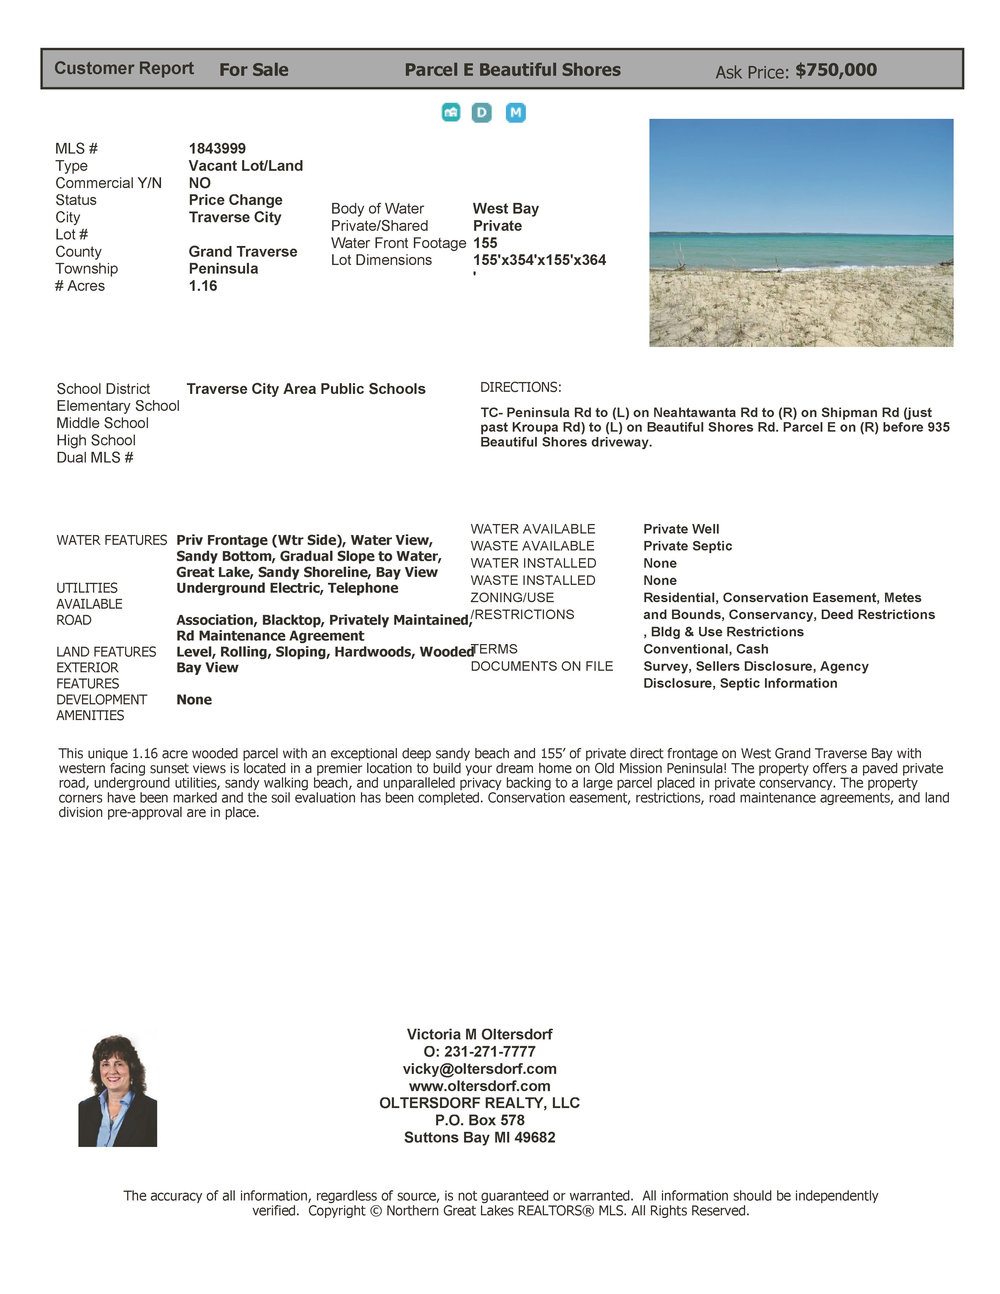 Beautiful Shores Parcel E - $750,000.jpg